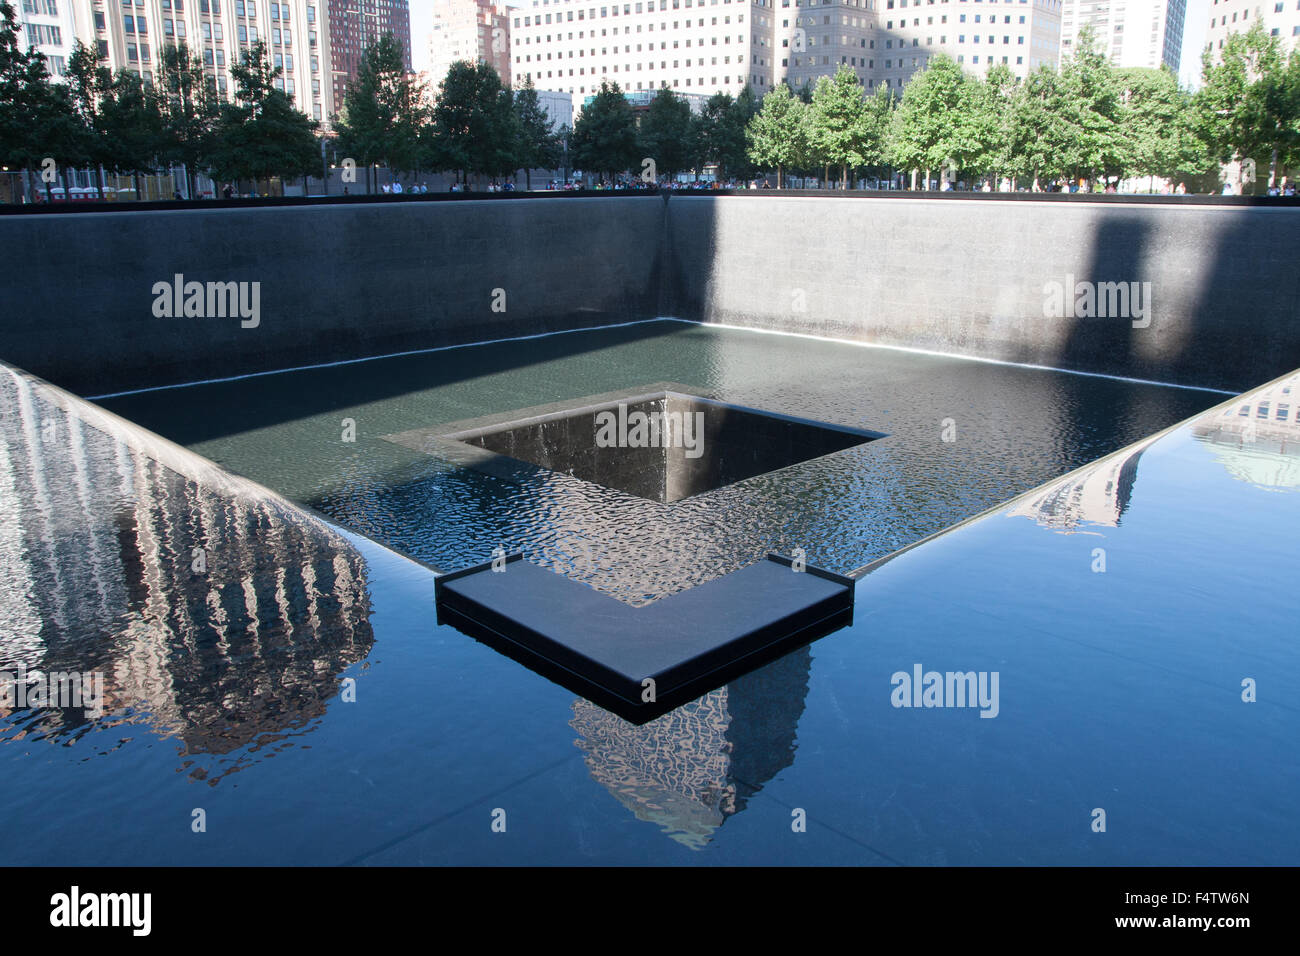 9/11 Memorial Pool - Stock Image